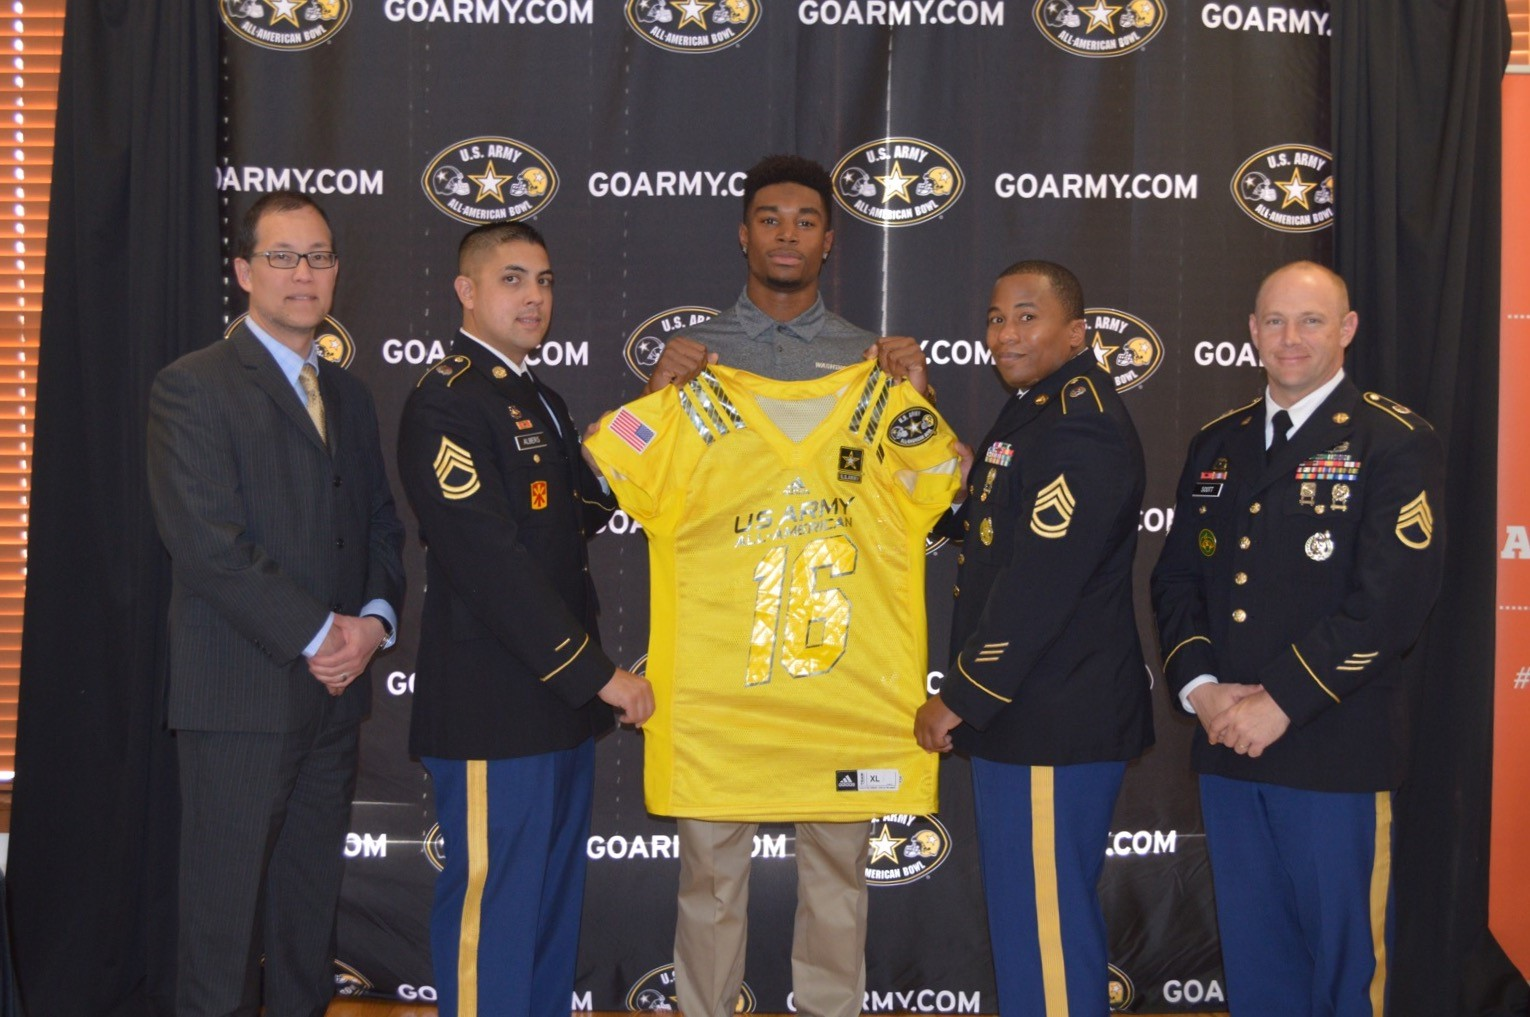 Camilo Eifler receives his Army All-American jersey from (from left): Mr. Joe Margolies, Sergeant First Class Kevin Albers, Sergeant First Class Jonathan Reed and Staff Sergeant Eric Scott (Photo: U.S. Army All-American Game)